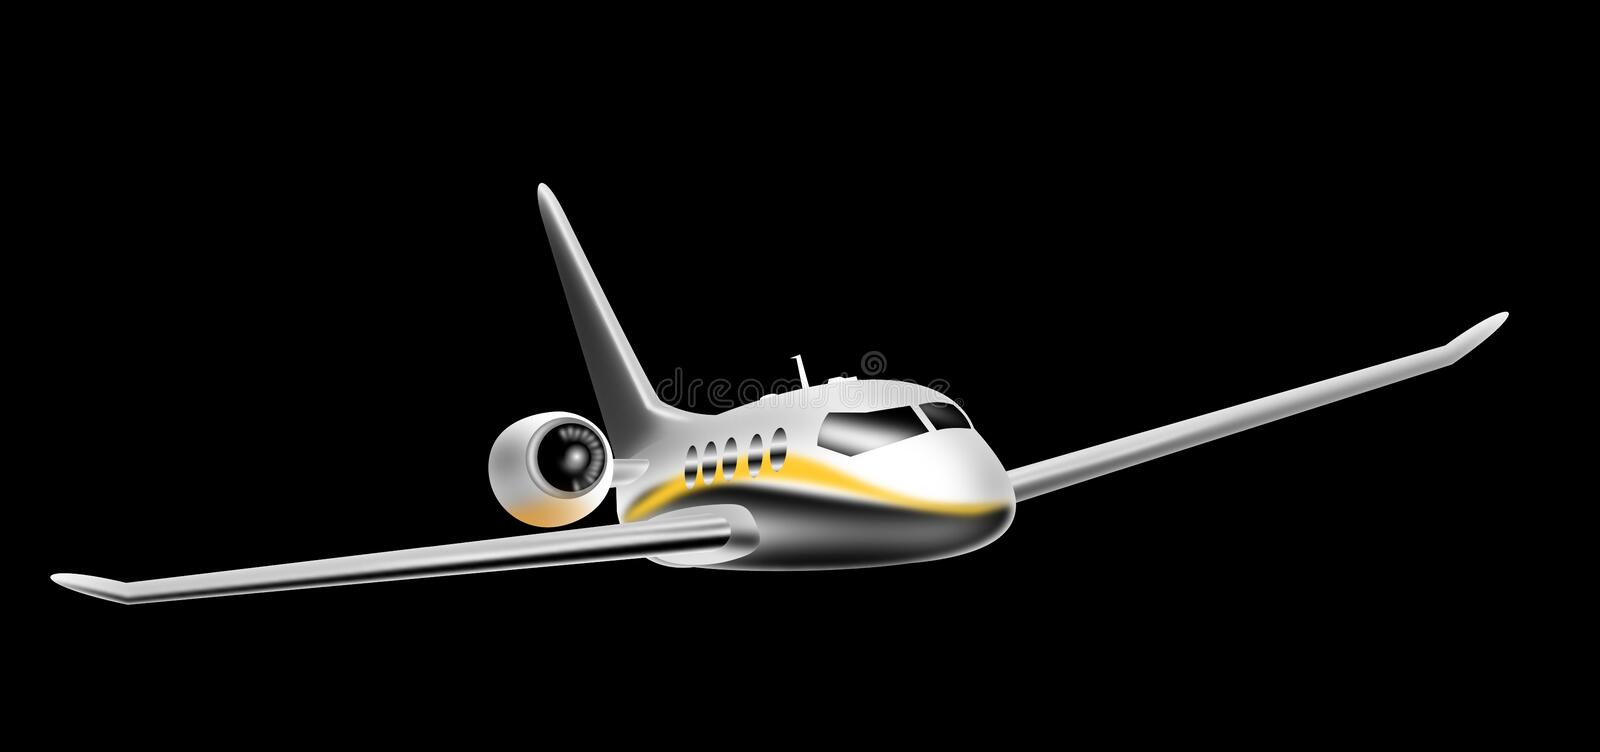 Commercial Airliner Royalty Free Stock Images